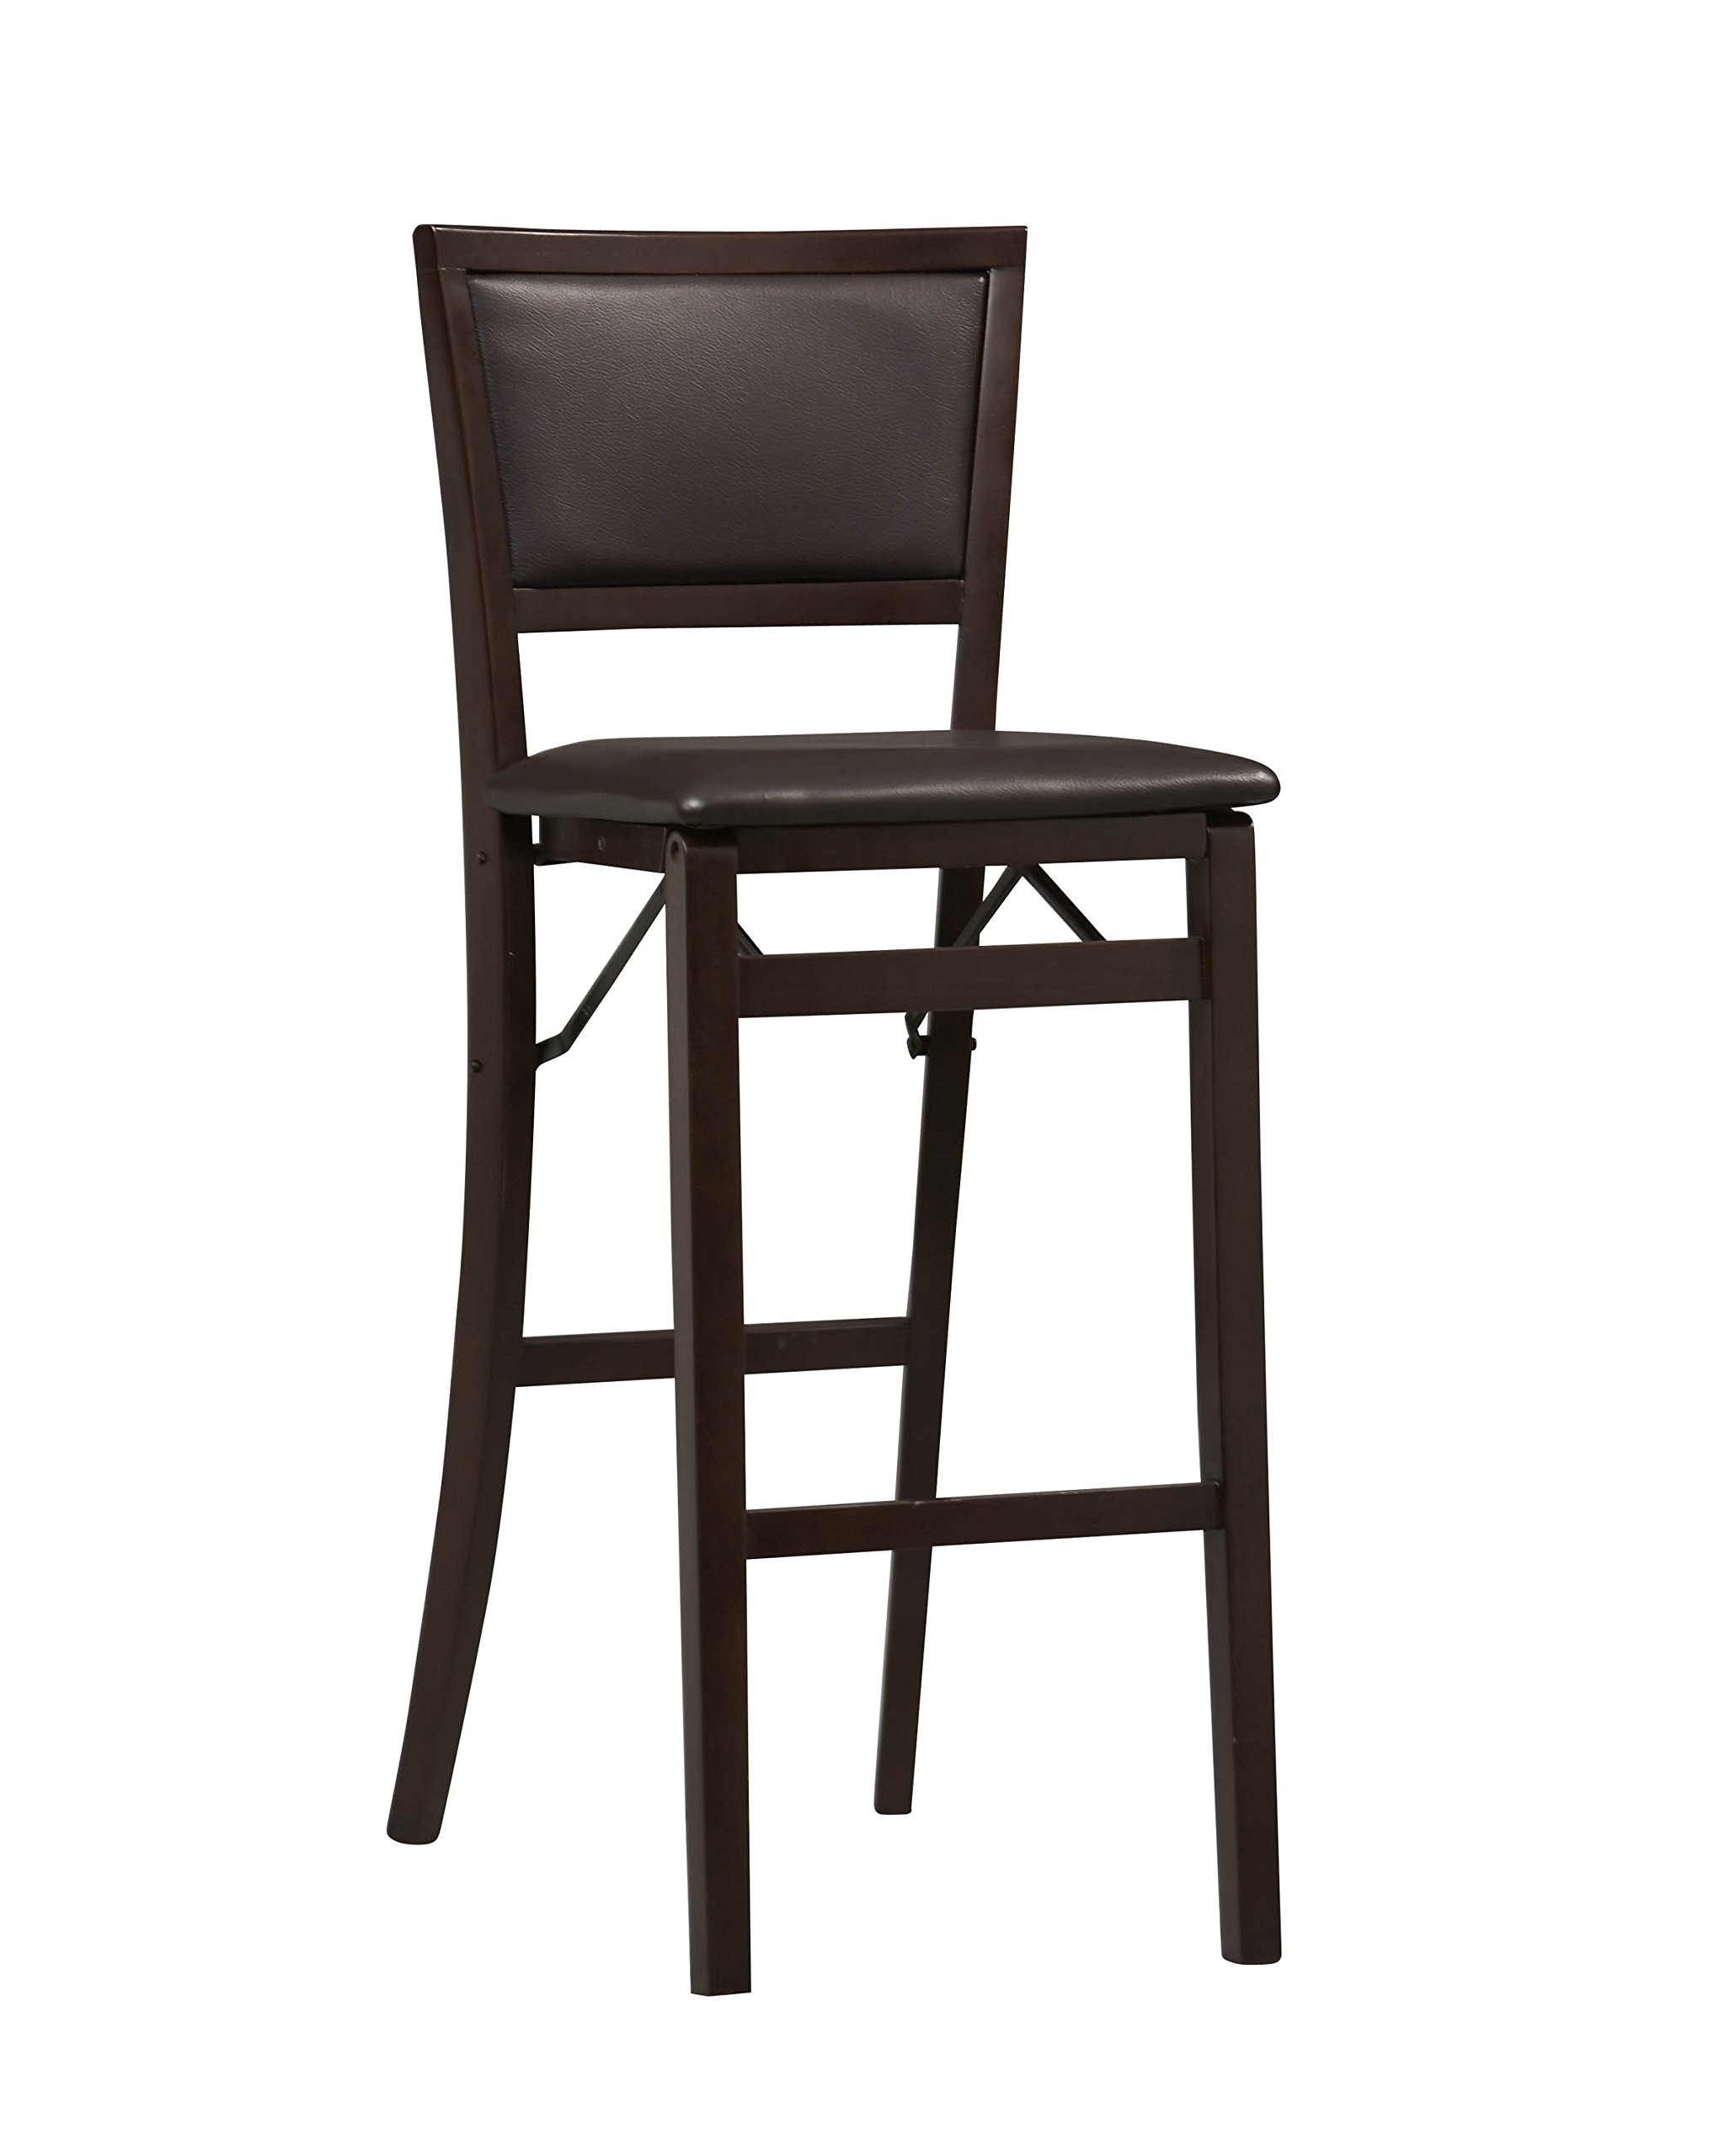 Linon Keira Pad Back Folding Bar Stool by Linon